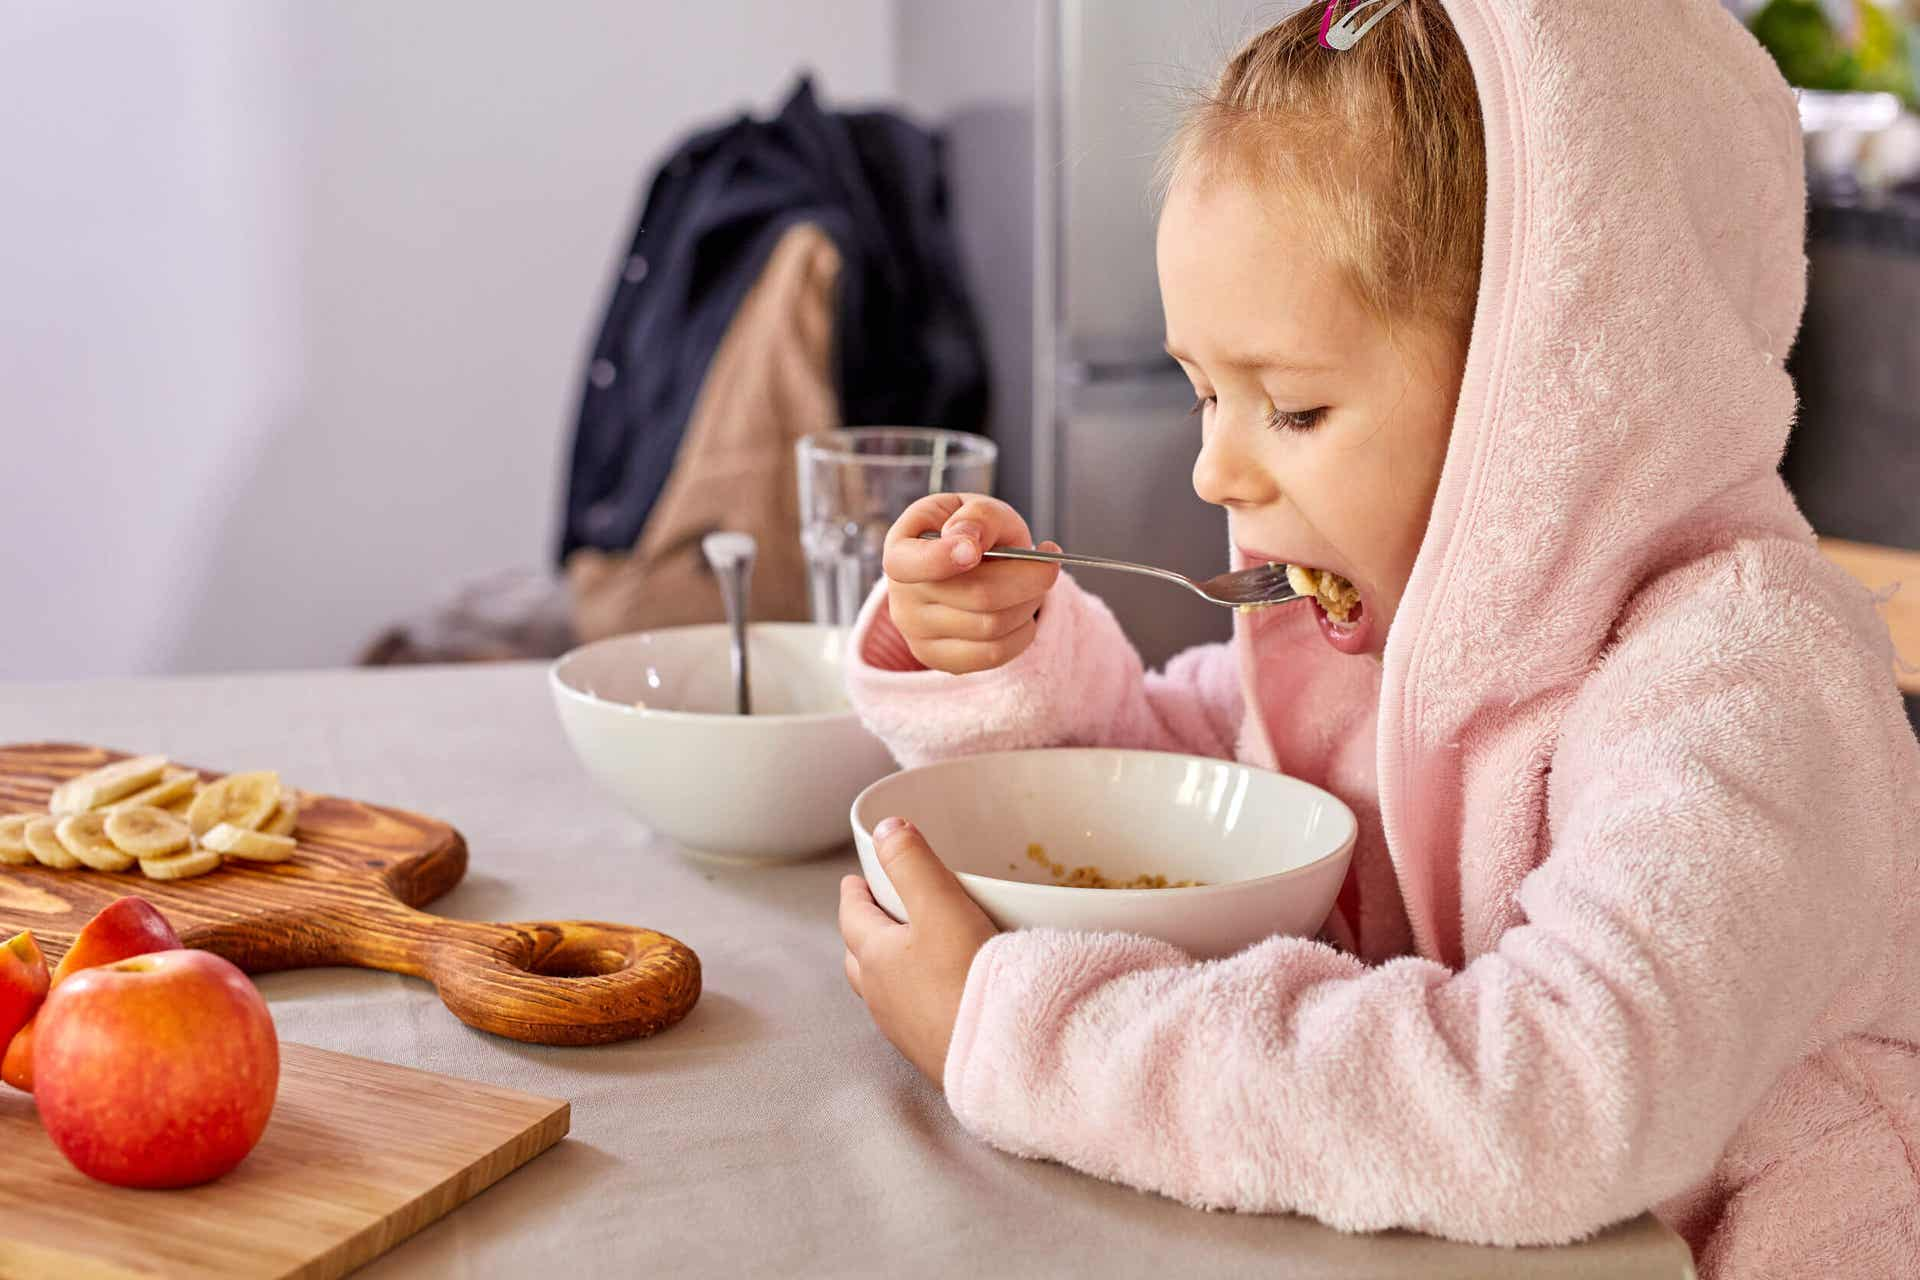 Afternoon Snacks for Children: Tips and Ideas